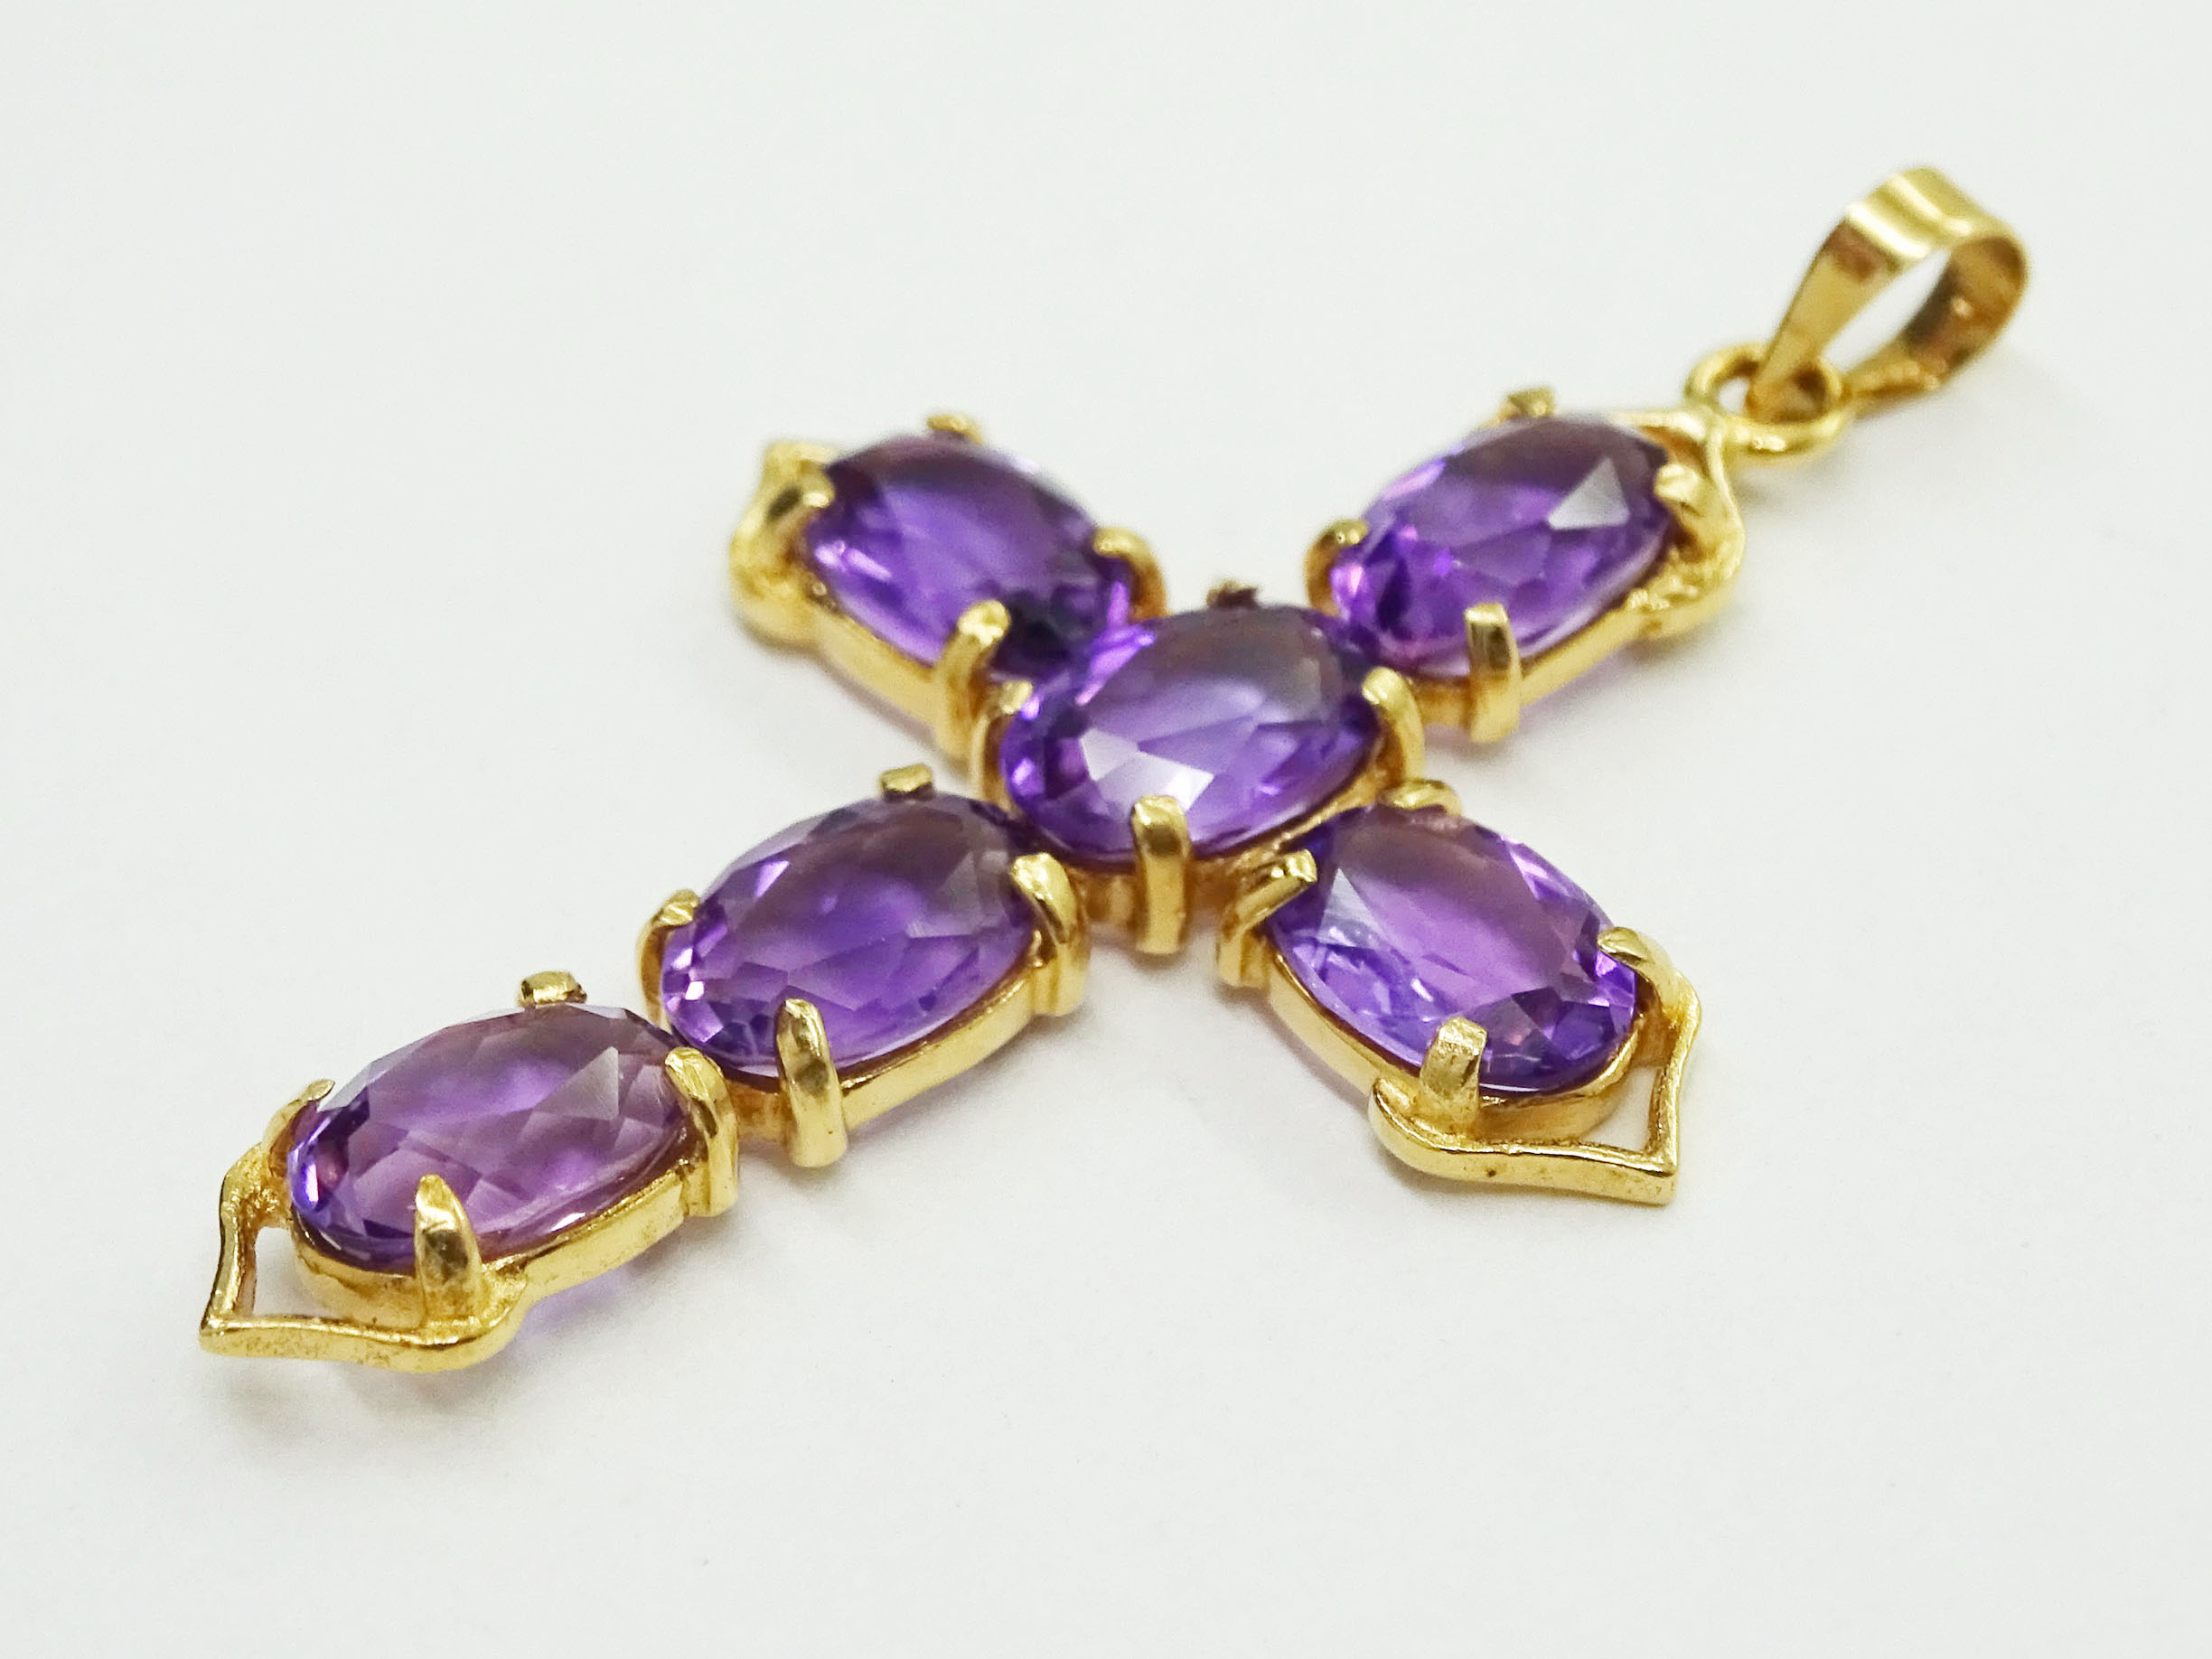 Natural Amethyst Pointed Cross Pendant 14k Gold